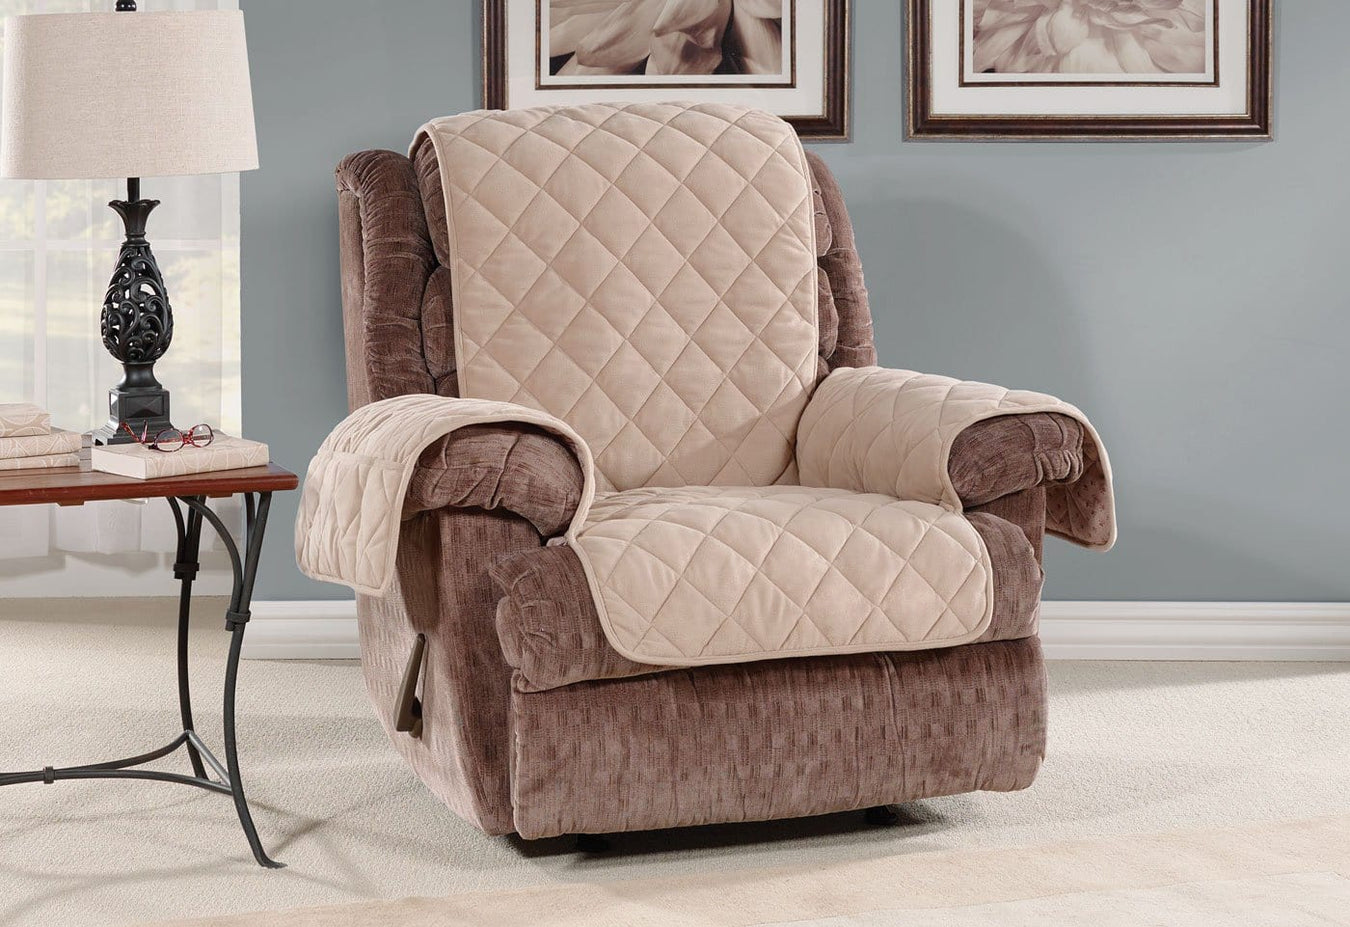 Oversized Microfleece Recliner Furniture Cover